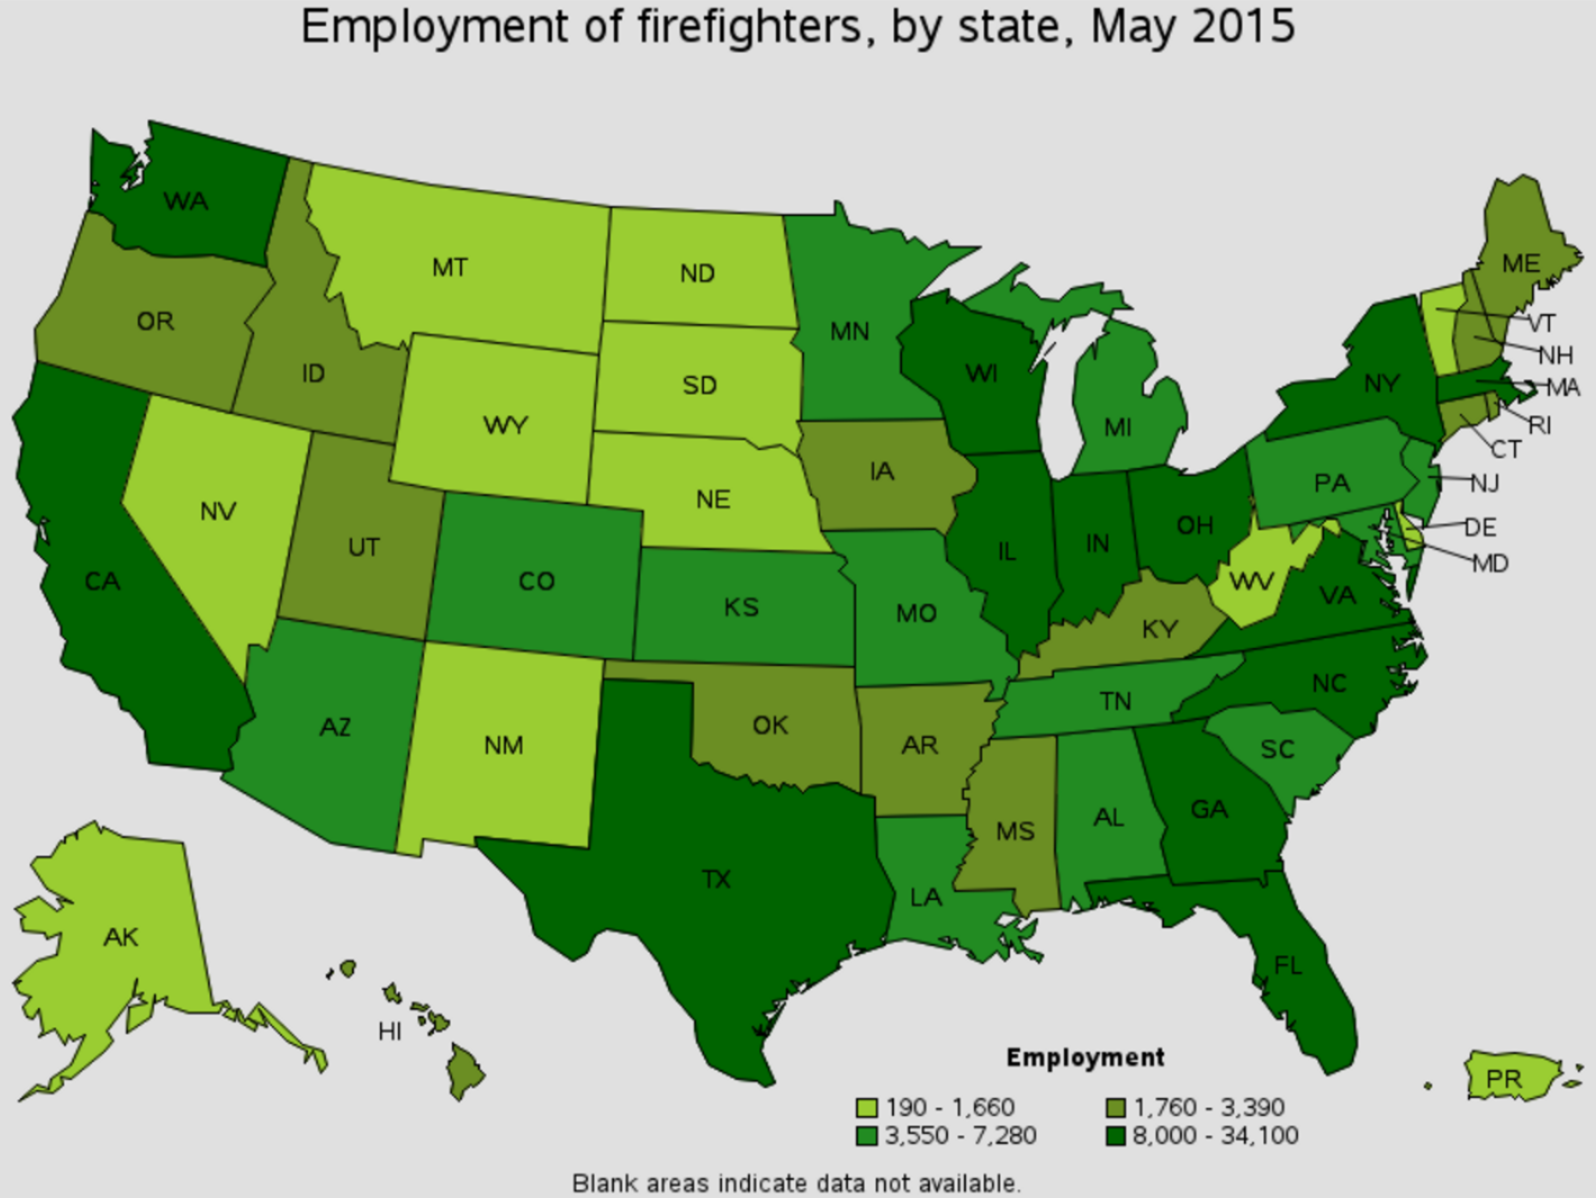 firefighter job outlook by state Adelanto California